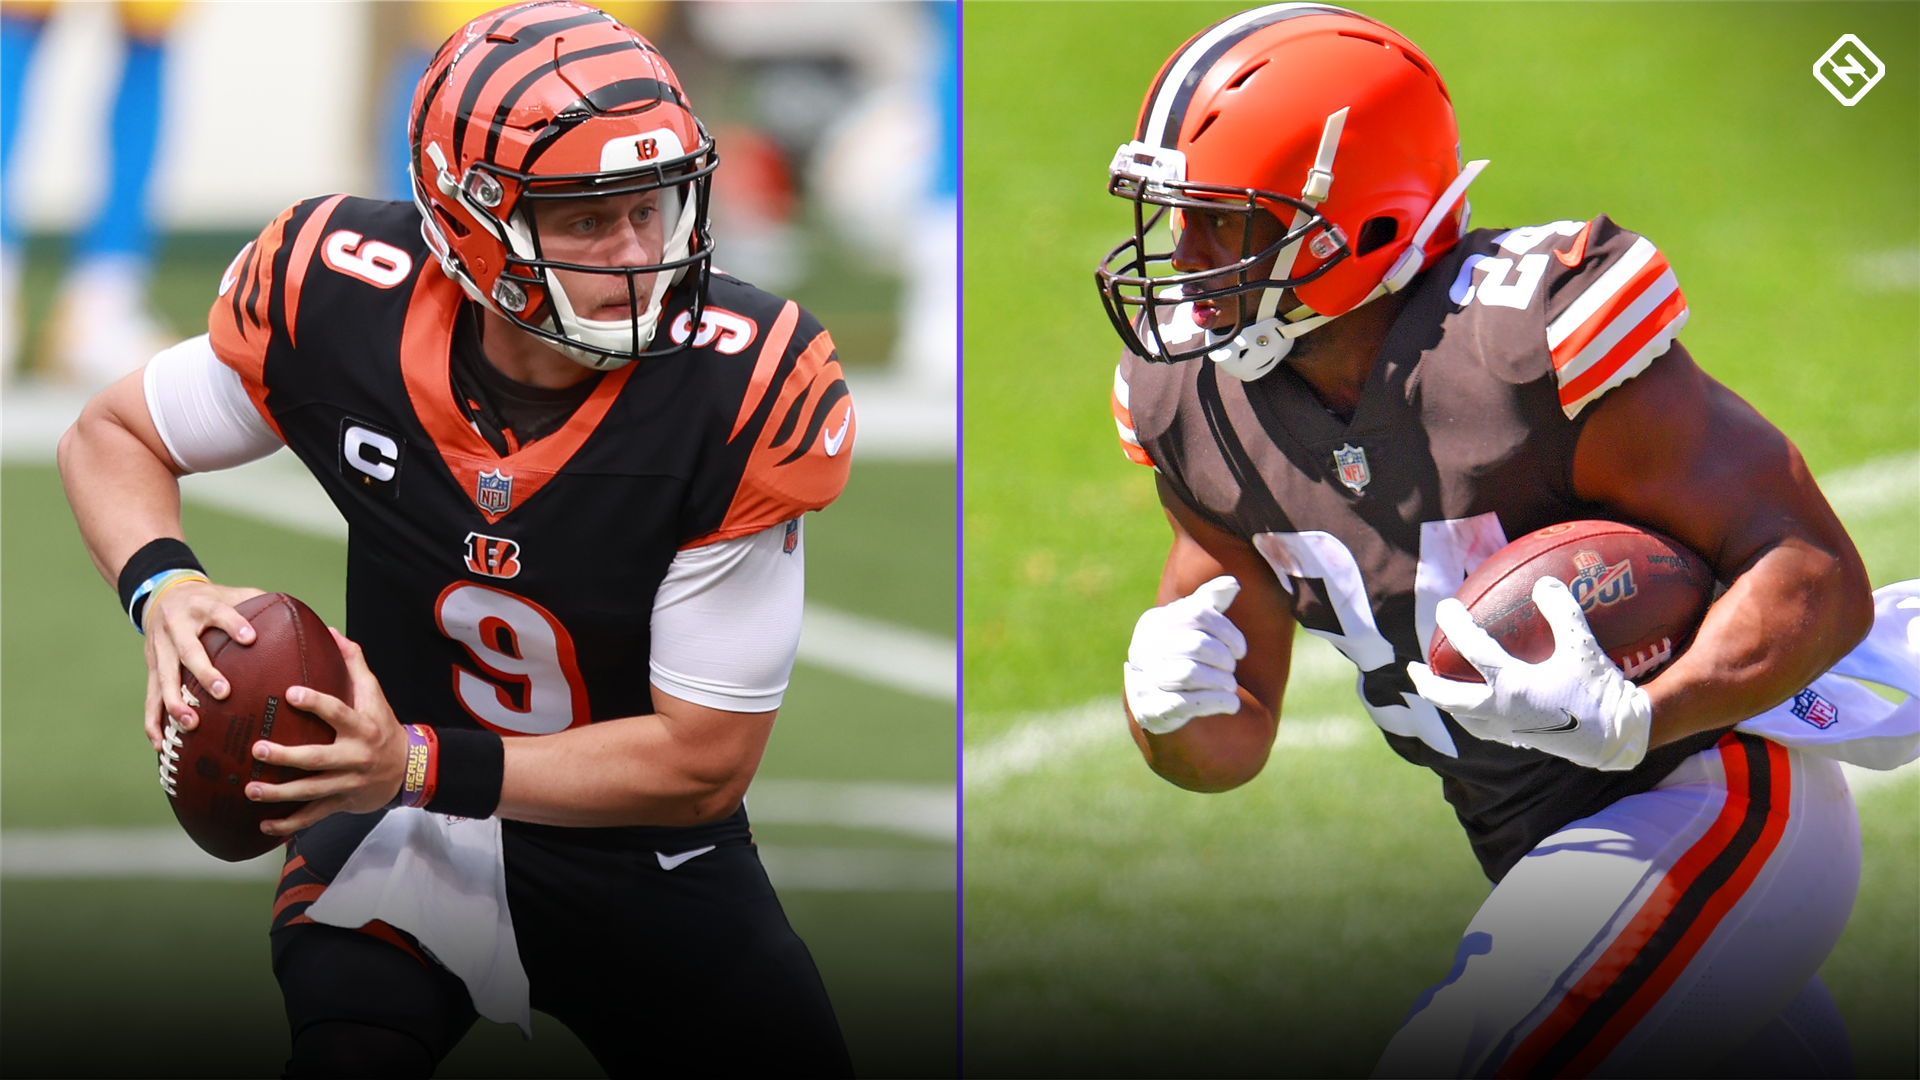 Bengals browns betting preview goal how to bet on ufc f8ghts